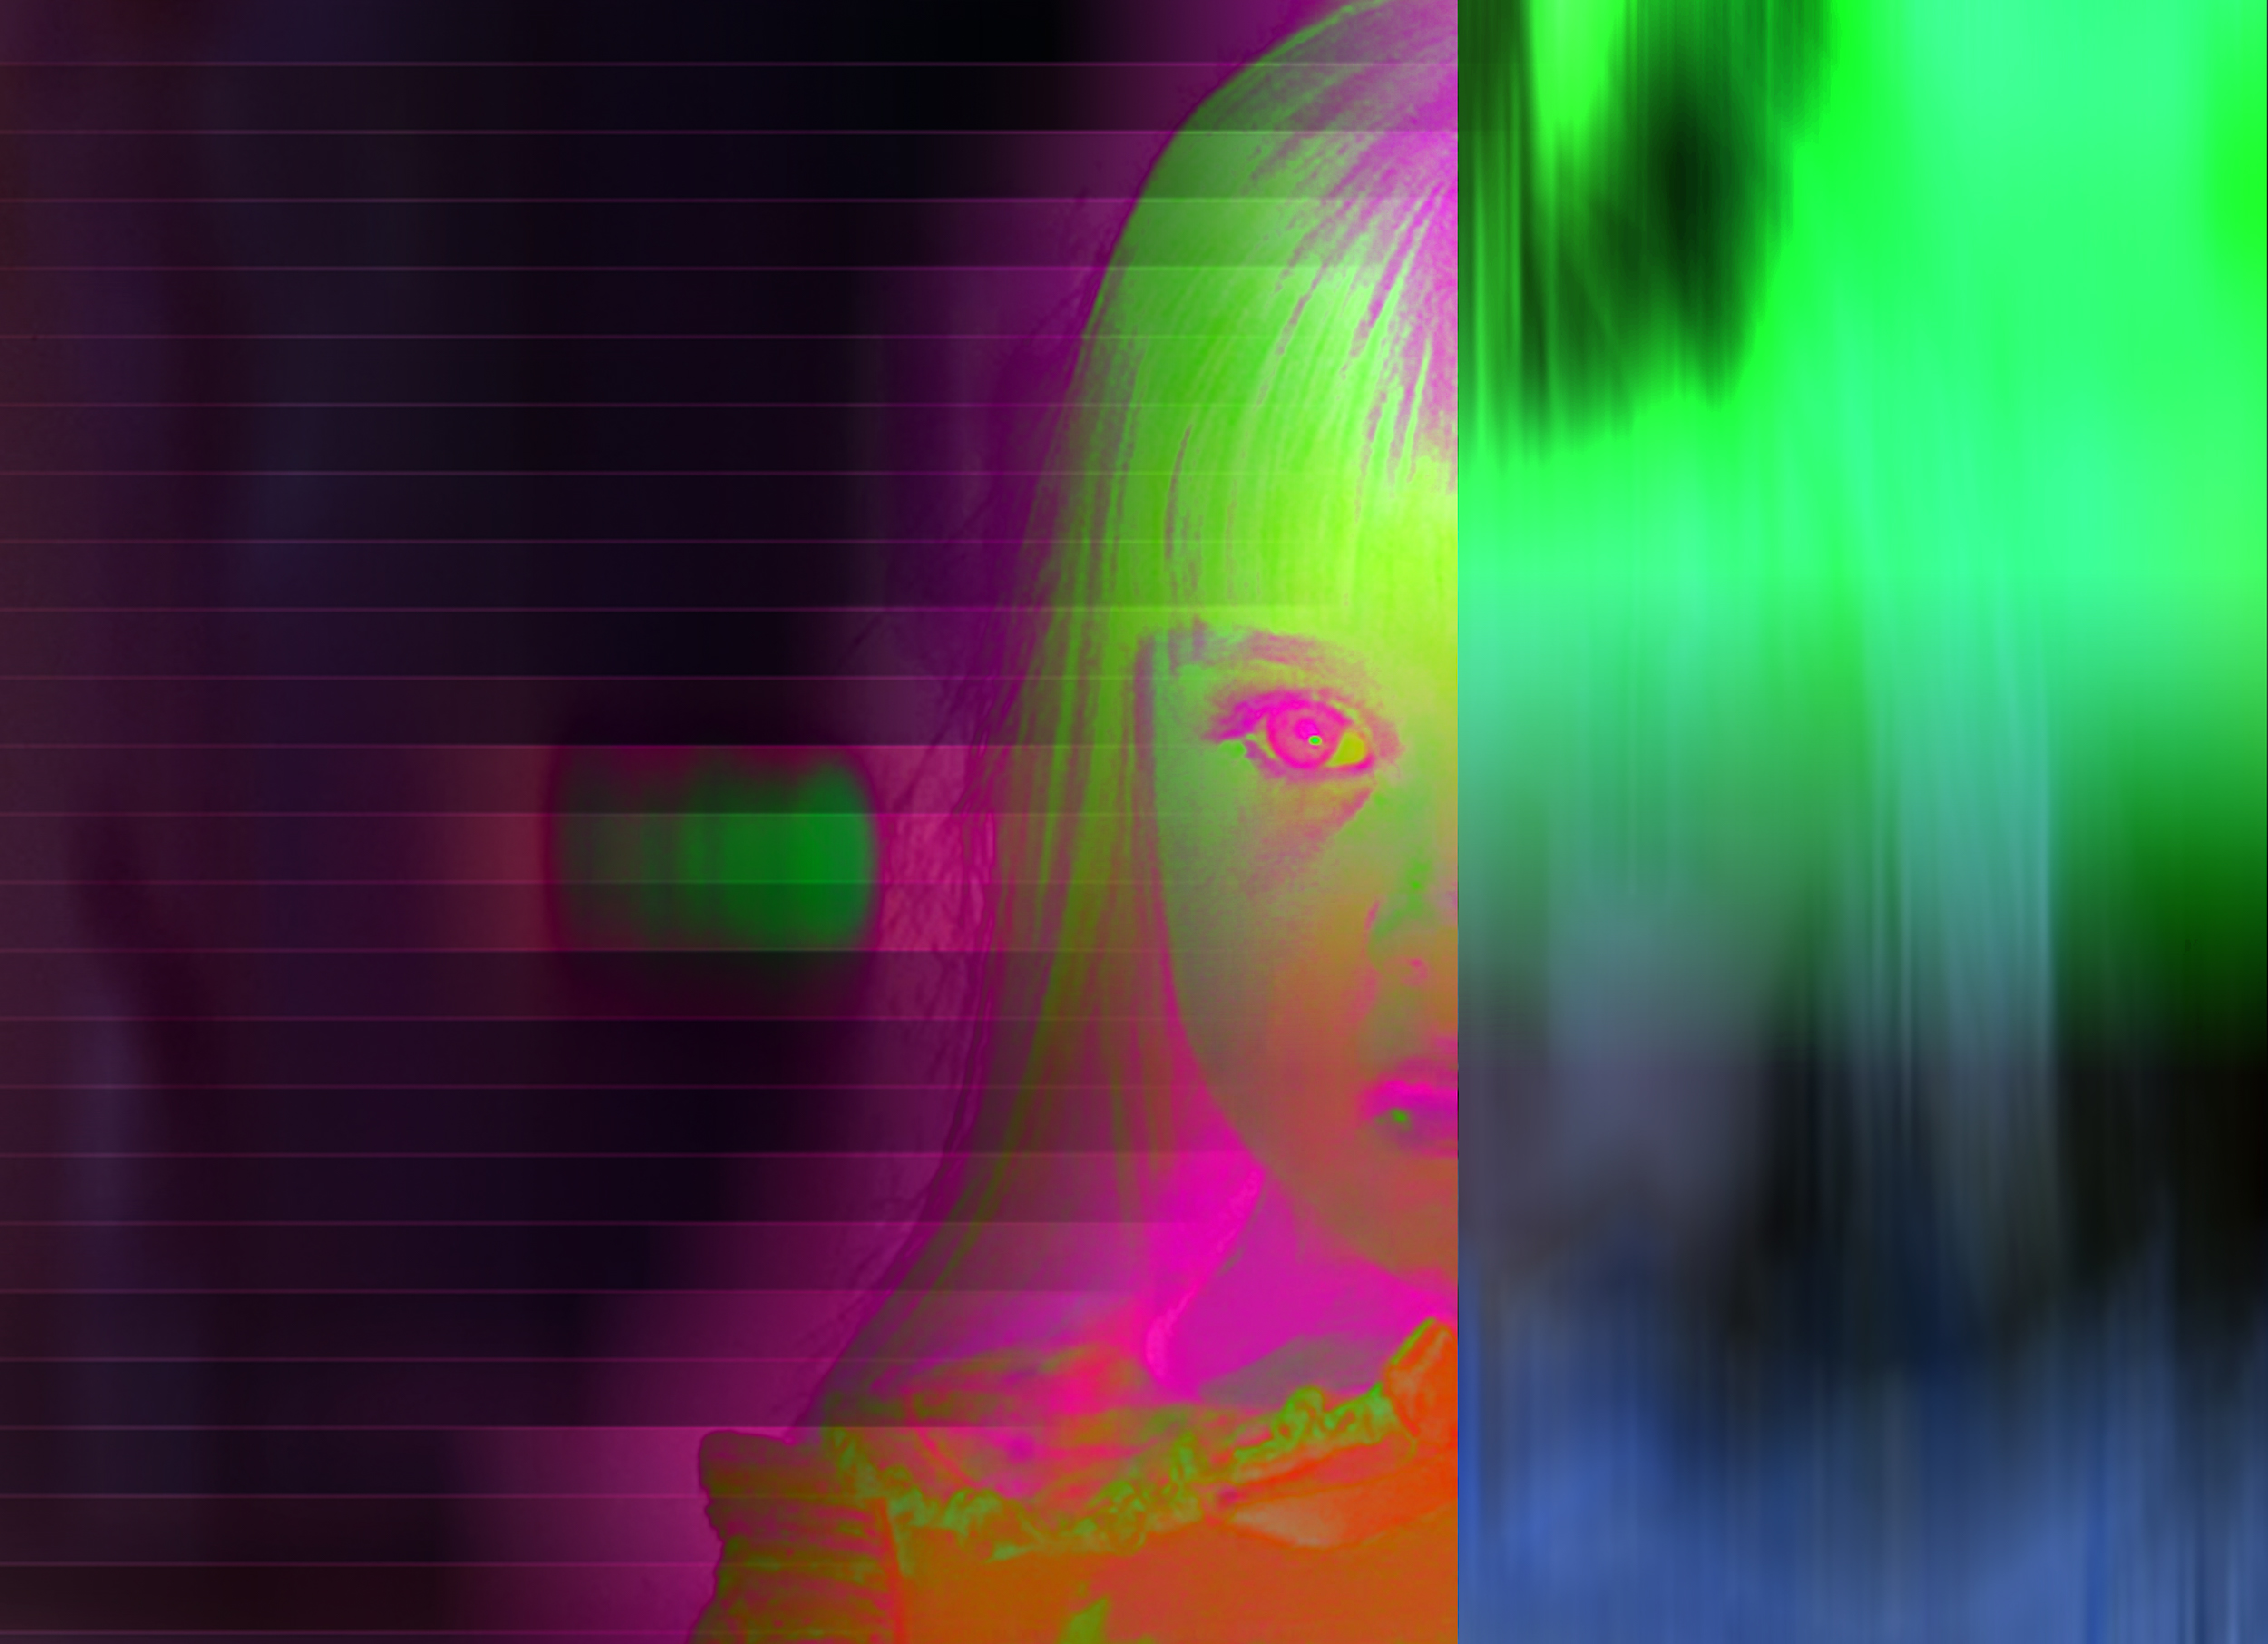 """Review: """"The more I go over it, the more I see in it"""": Zuckerman Museum of Art's """"Medium"""" - """"Thompson's signature glitchy technicolor images depict the character Carol Anne Freeling from the 1982 film 'Poltergeist,' as well as a scene from television coverage of 18-month-old Jessica McClure being trapped in a well in her aunt's backyard in October 1987. The Poltergeist image is a funny but apt inclusion in Medium, a brightly sour piece of candy amidst a sometimes-heavy meal, and a reminder of ghost stories' campy genre descendants.""""–Logan Lockner (ARTSATL, Oct 12, 2017)"""